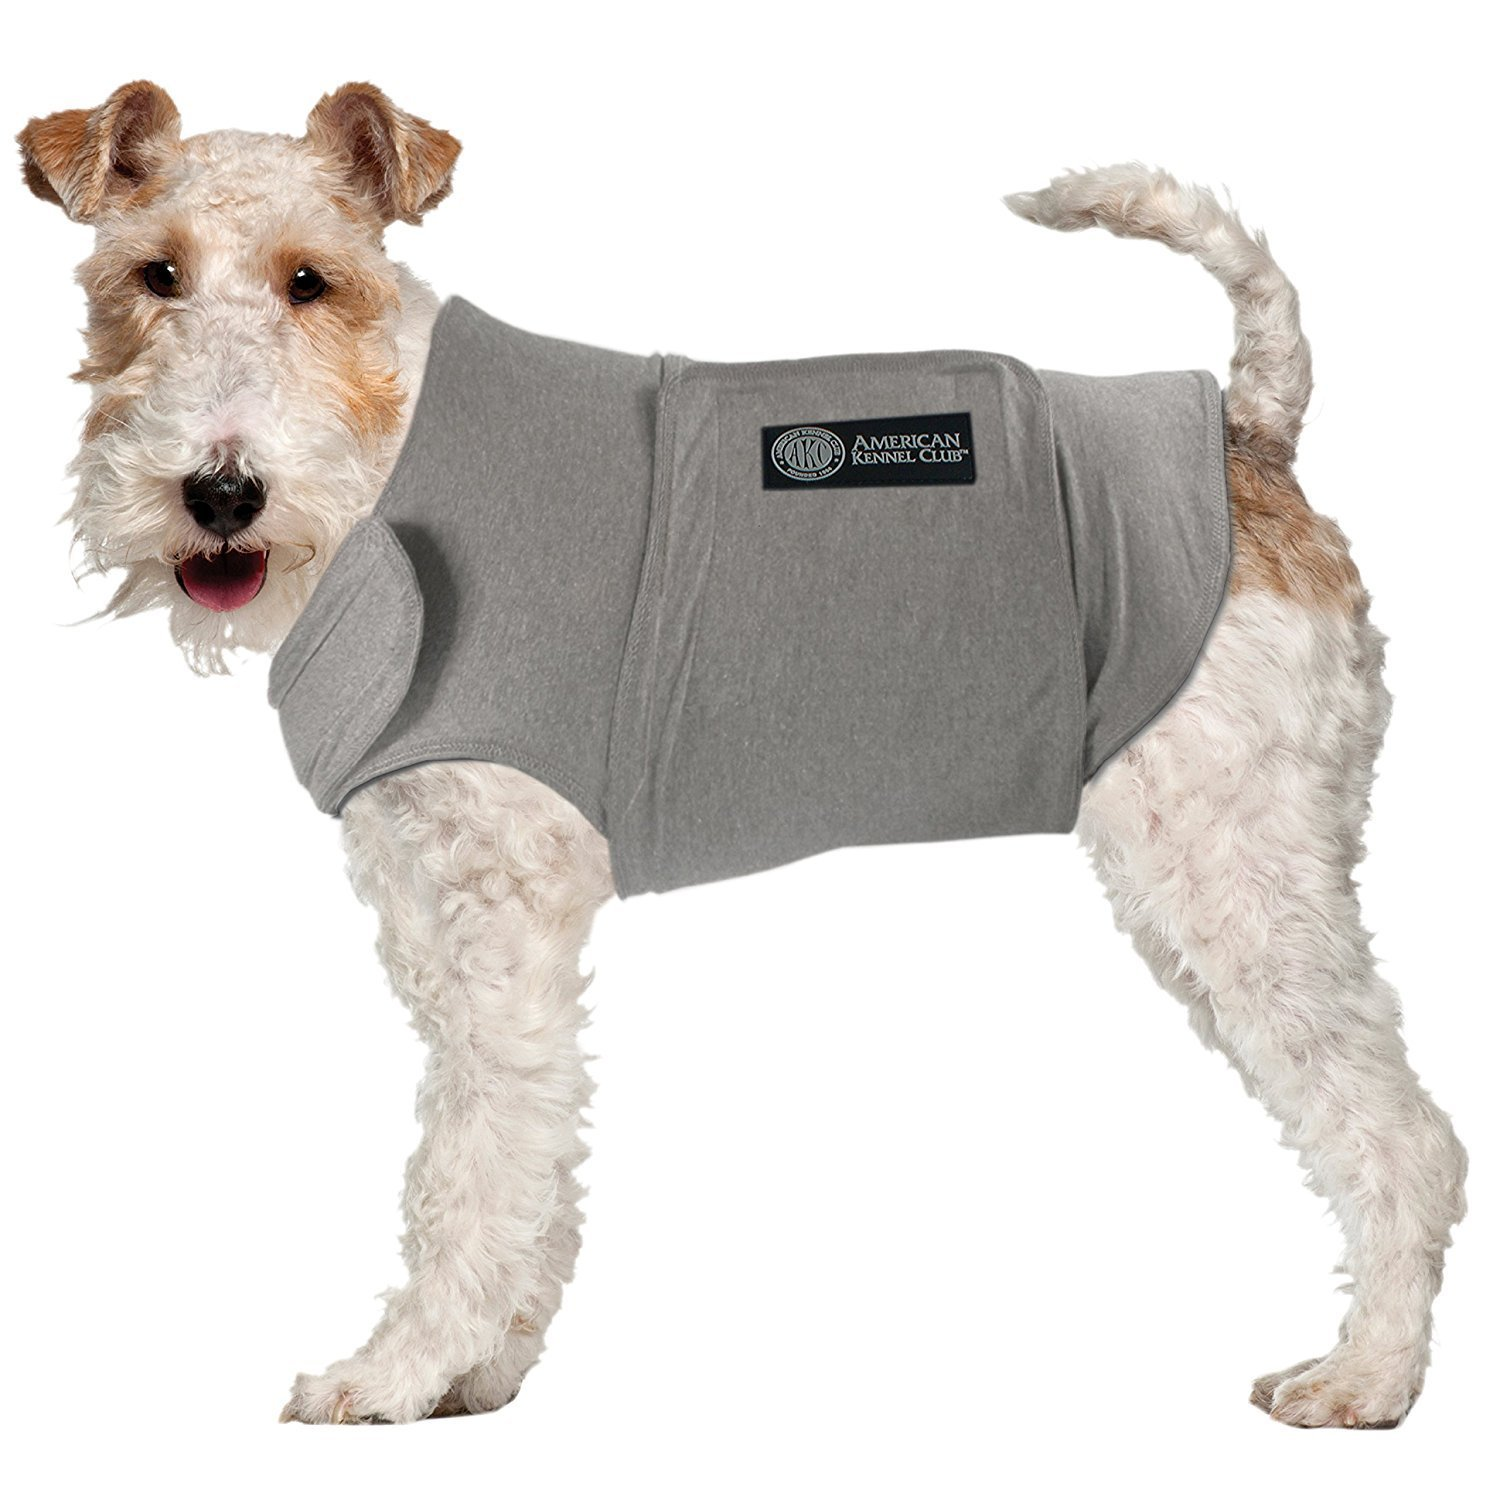 American Kennel Club Anti Anxiety and Stress Relief Calming Coat for Dogs